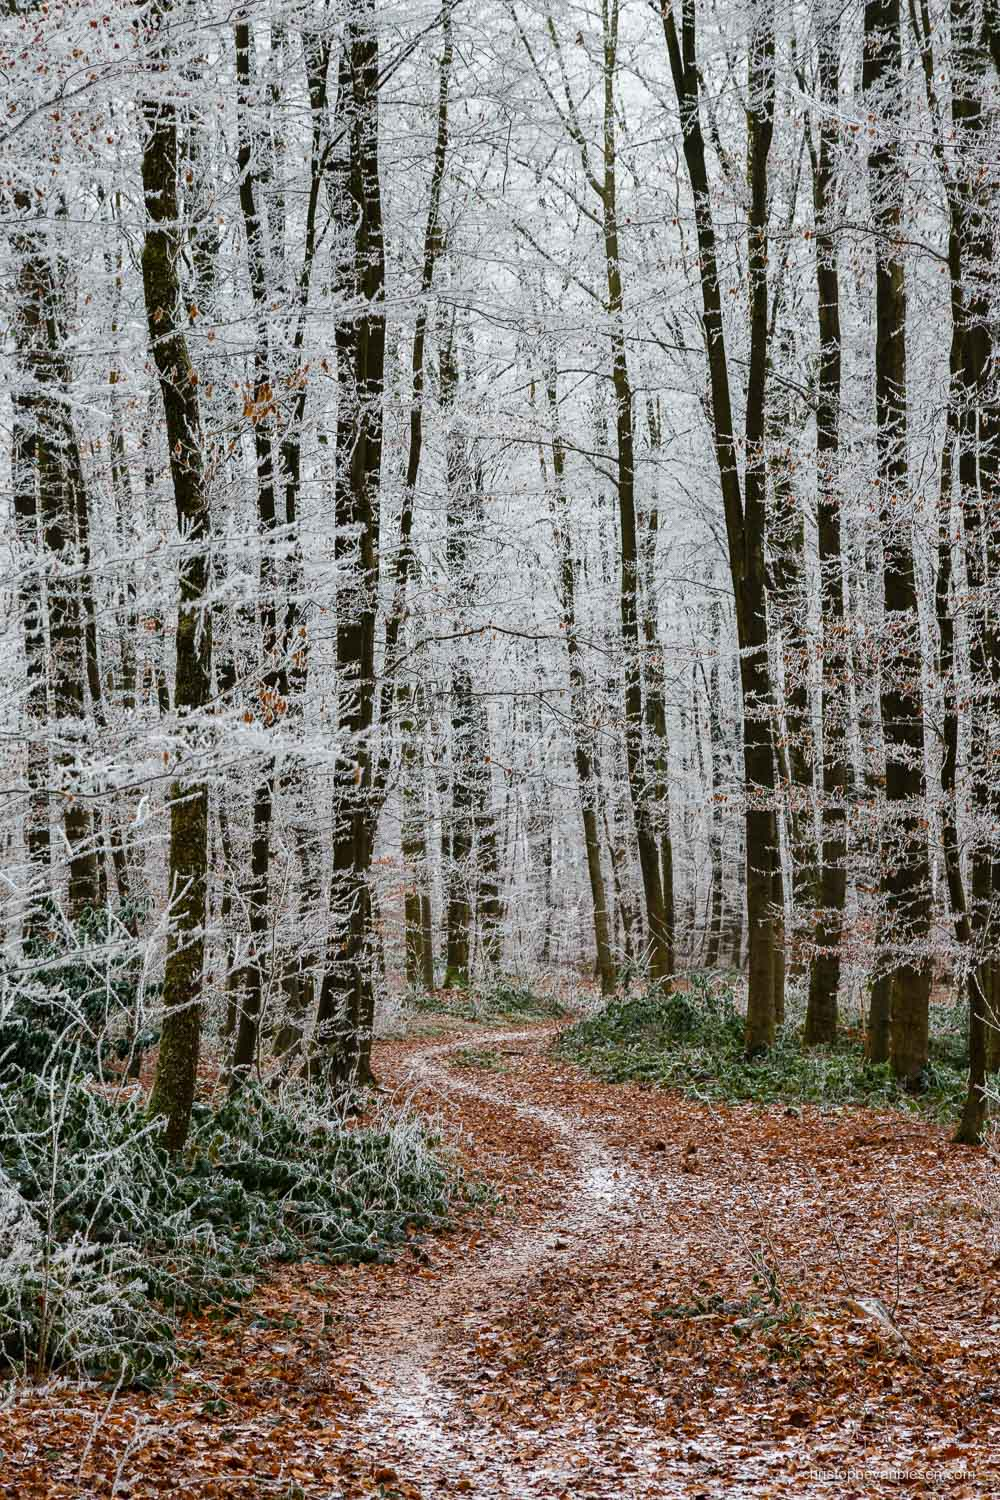 Snow in Luxembourg - Freezing winter in a forest somewhere in the Grand-Duchy of Snow in Luxembourg - Winter Wanderlust